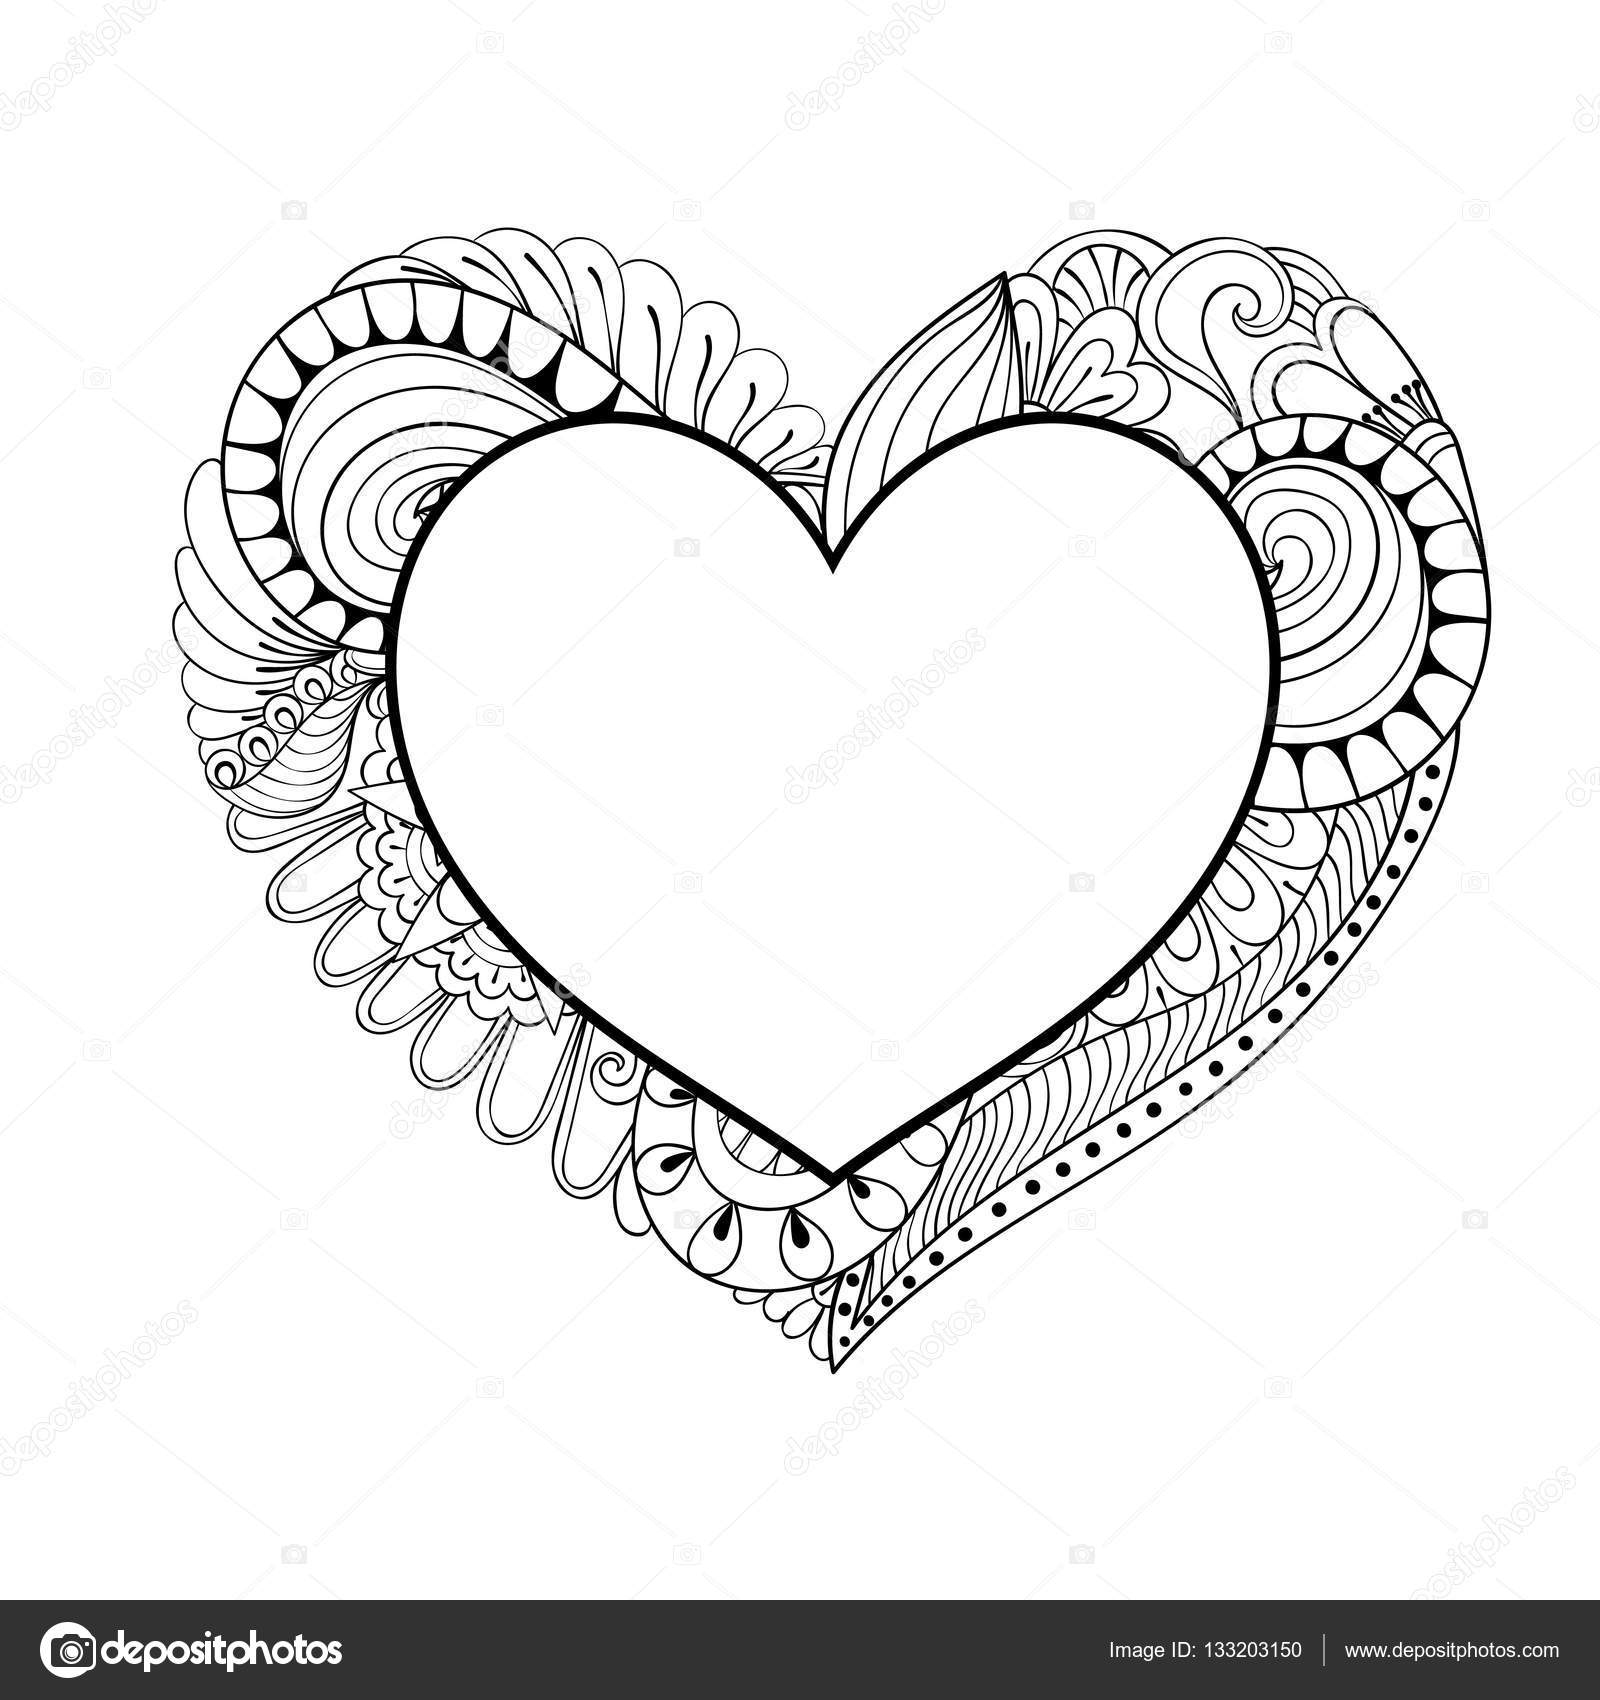 Floral Doodle Heart Frame In Zentangle Style For Adult Coloring Page Hand Drawn Vector Monochrome Illustration Valentines Day Greeting Card Template